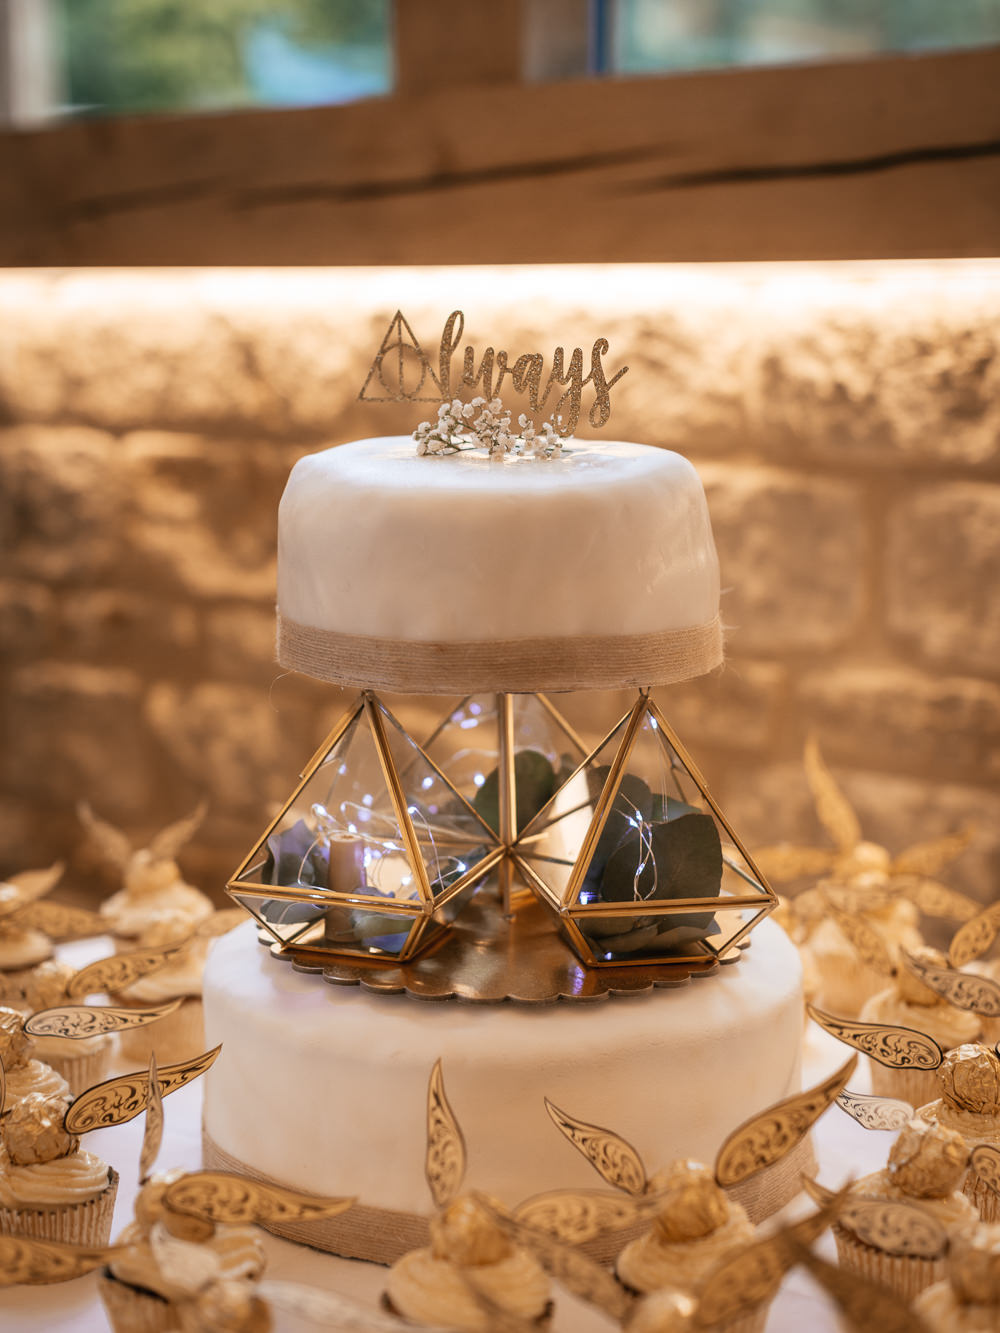 Harry Potter Cake Geometric Always Golden Snitch Fairy Light Mickleton Hills Farm Wedding Jules Barron Photography